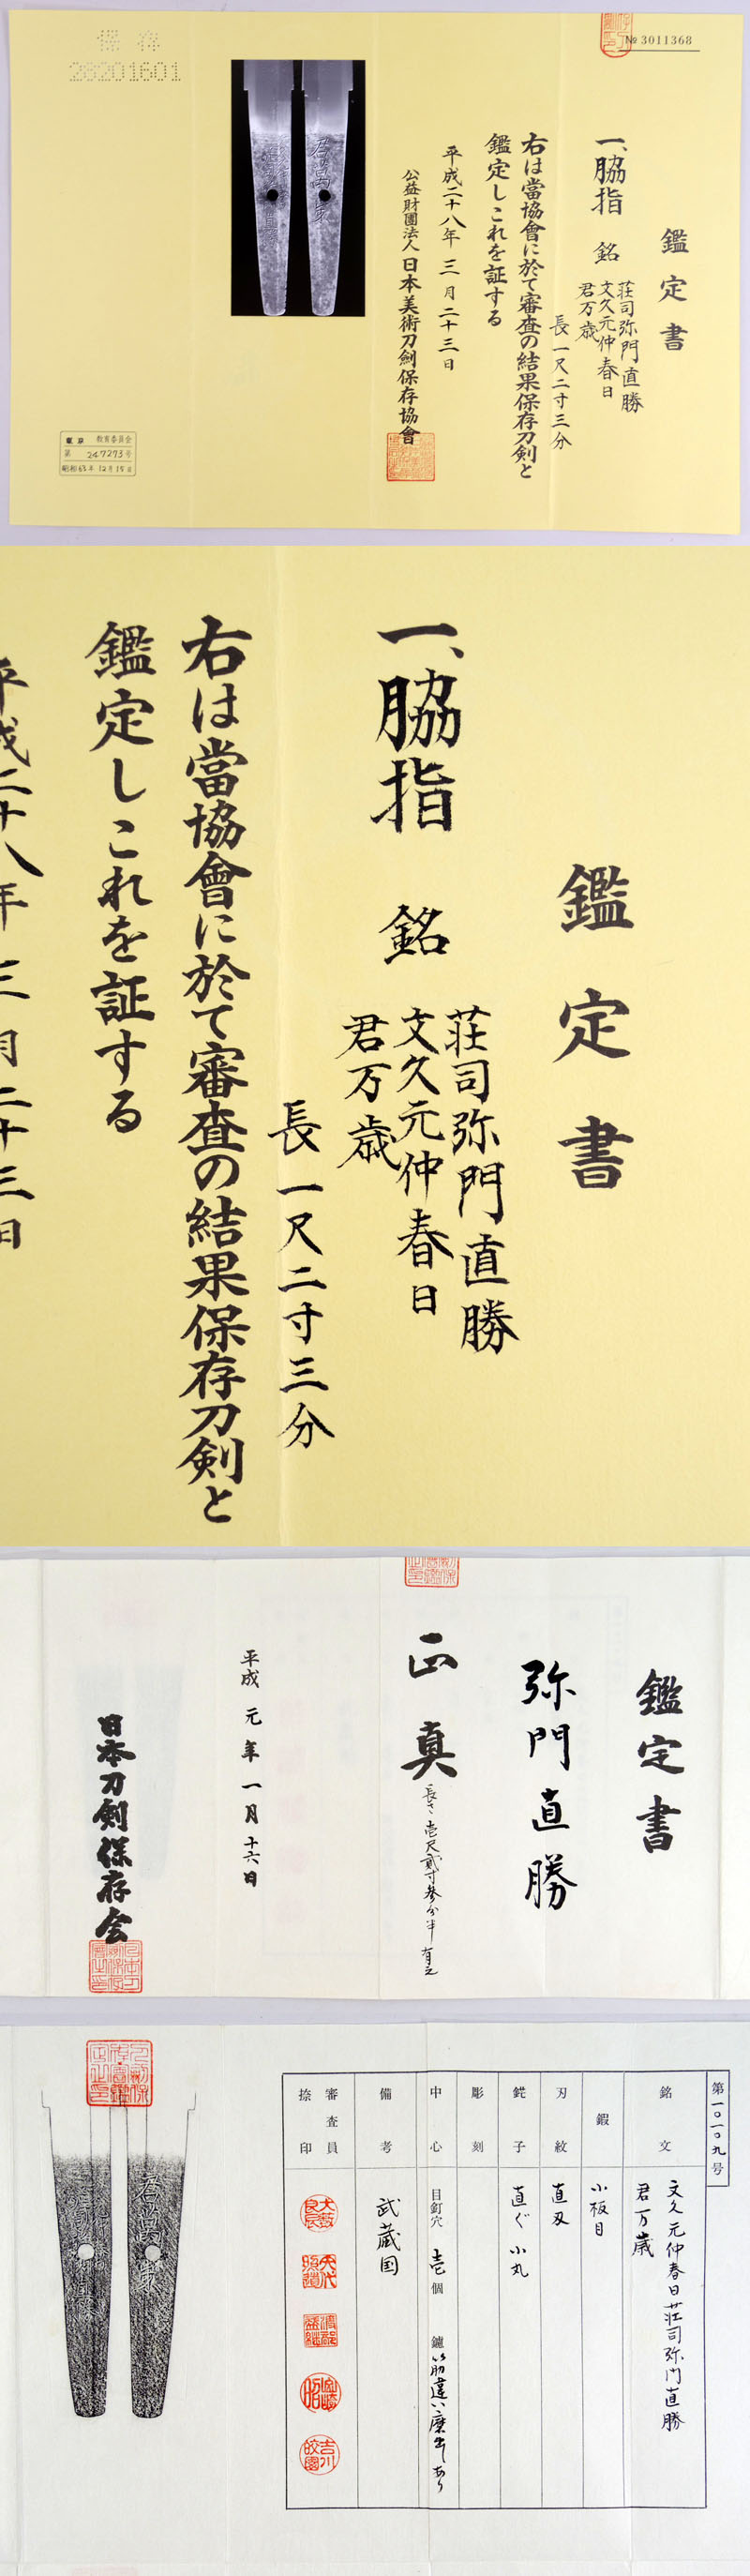 荘司弥門直勝 Picture of Certificate